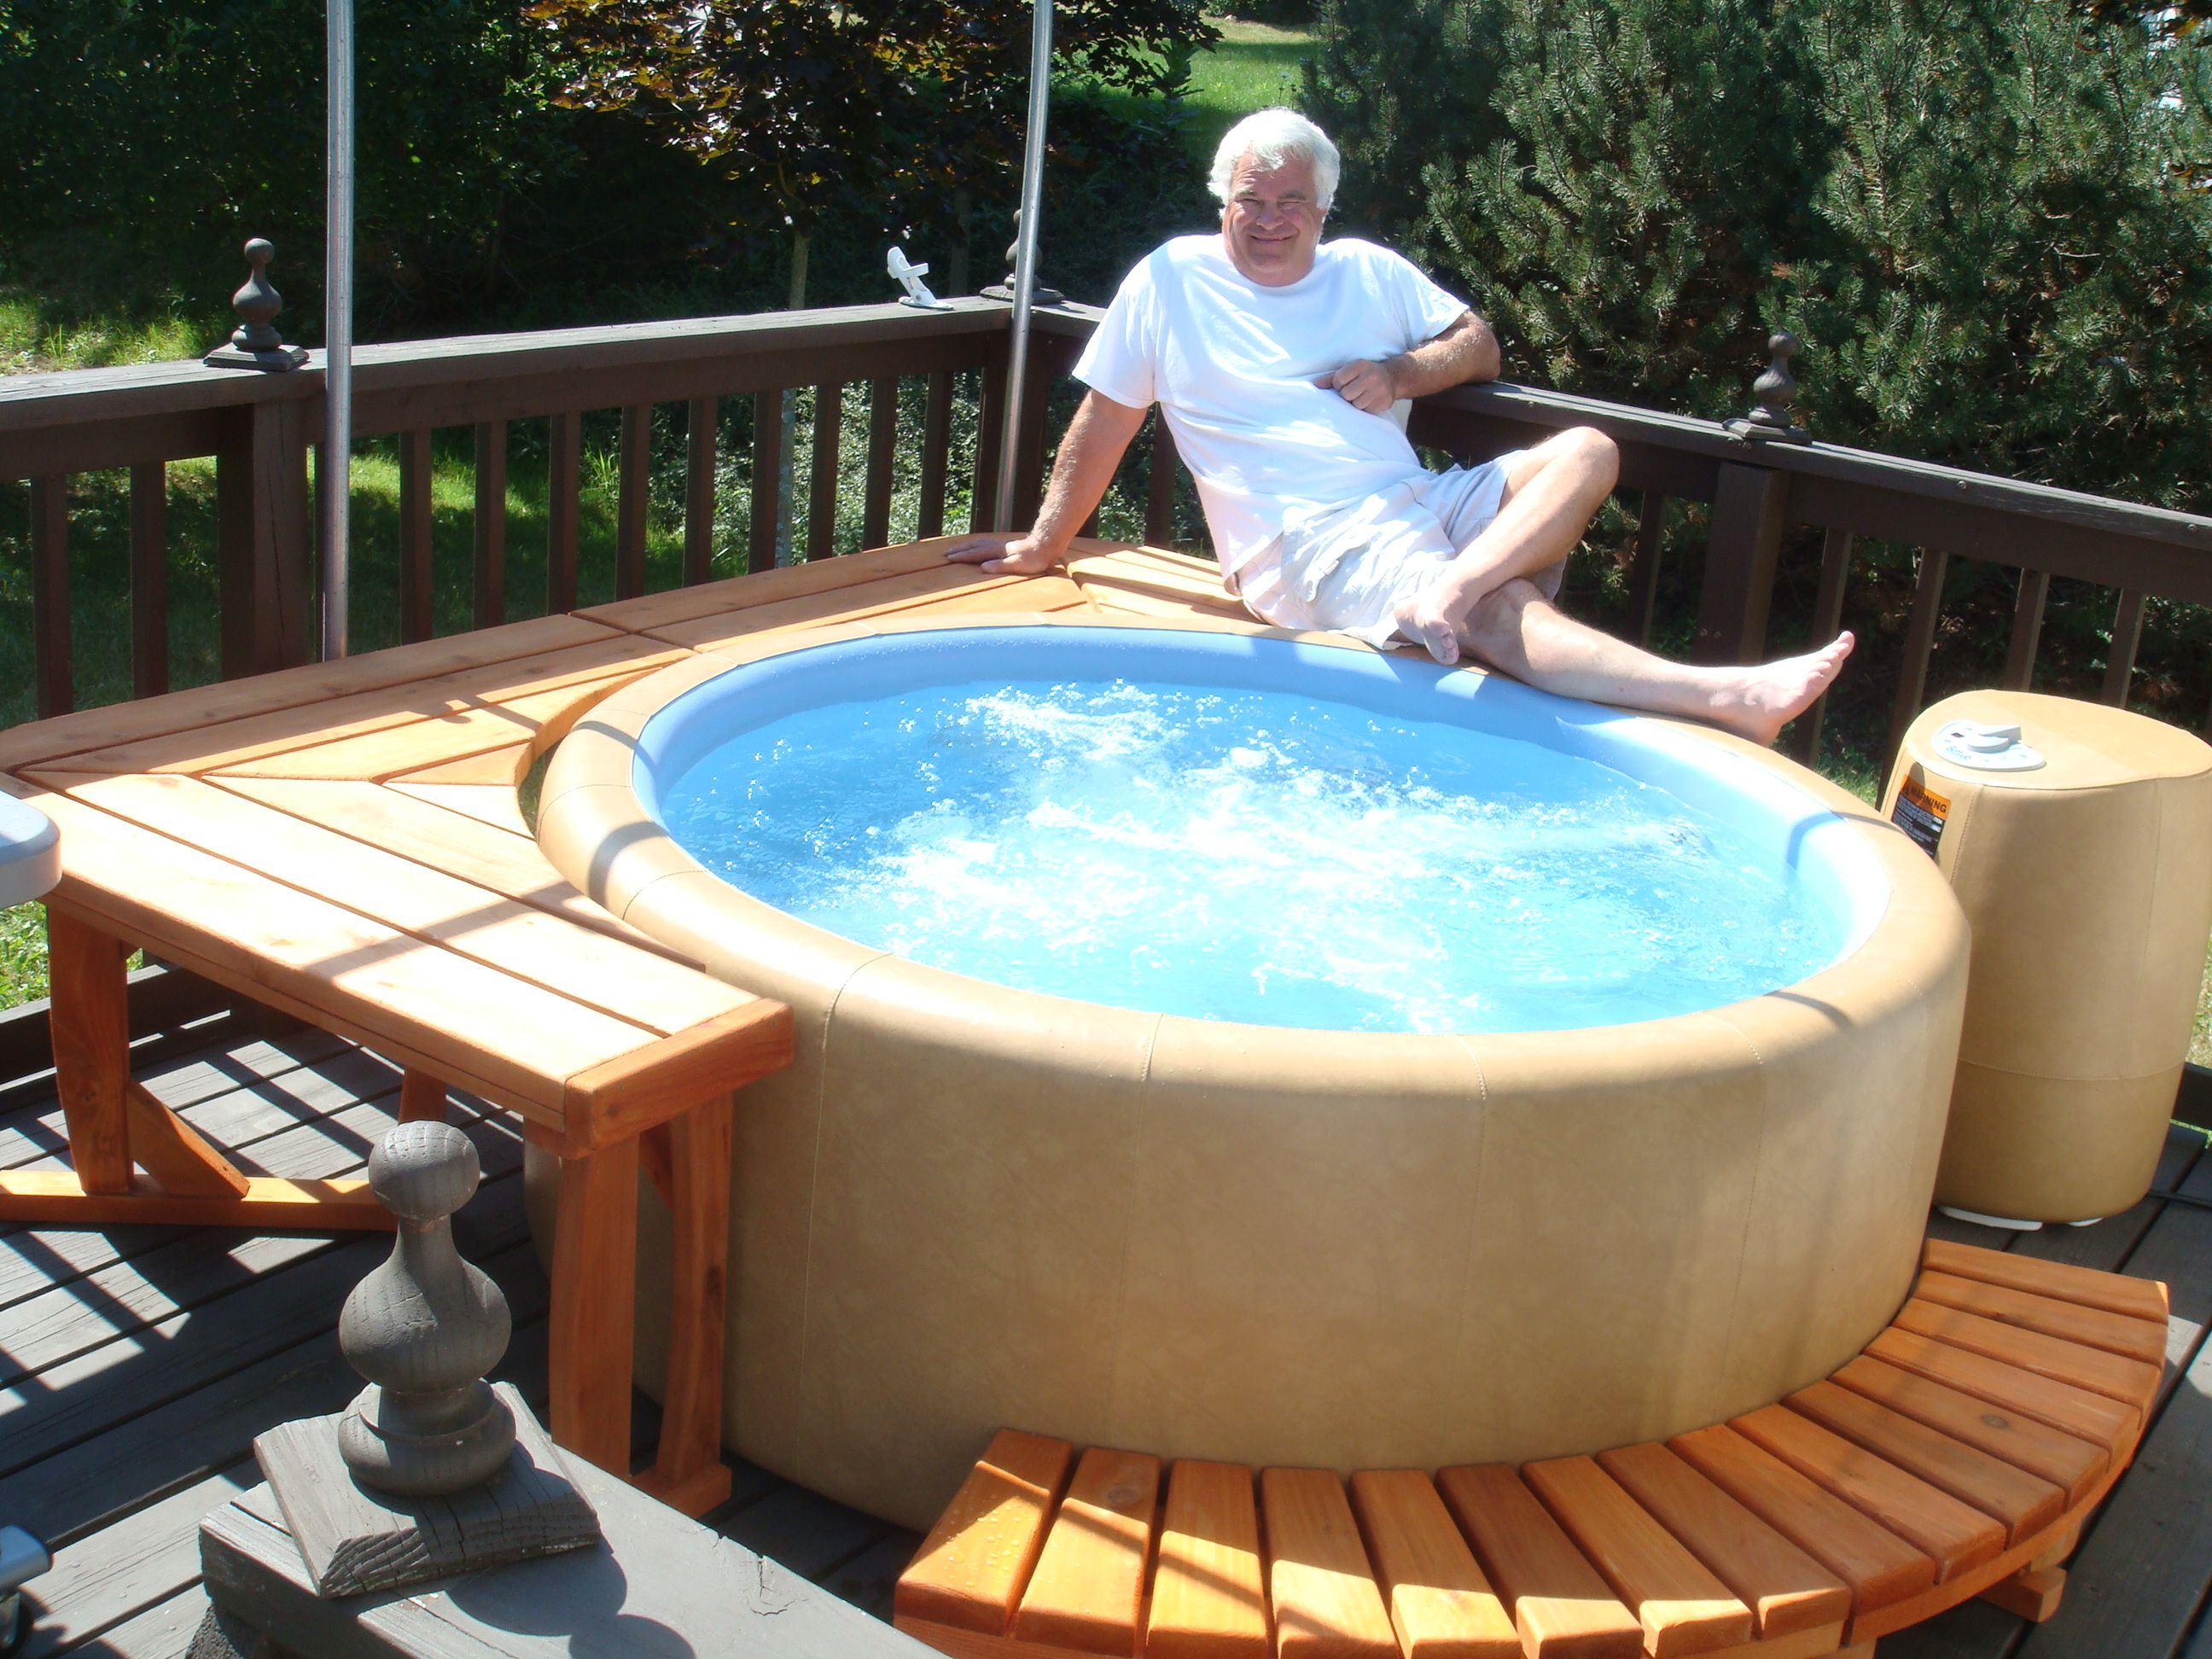 T220 Softub With Part Of Square Cedar Surround